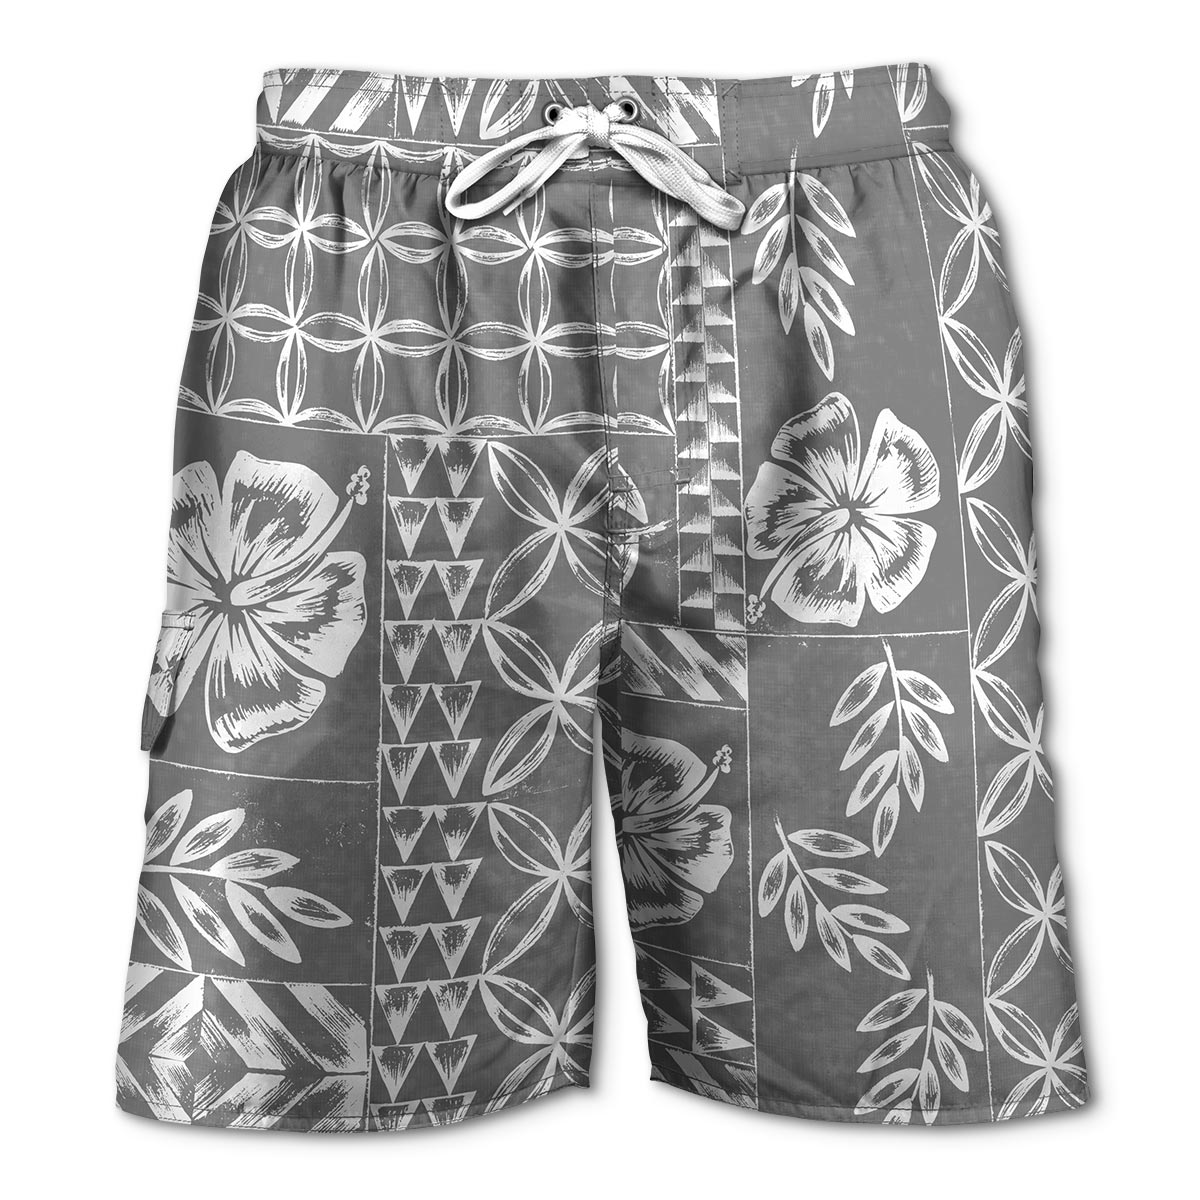 Newport Blue - Swim Shorts | Tapa - Grey